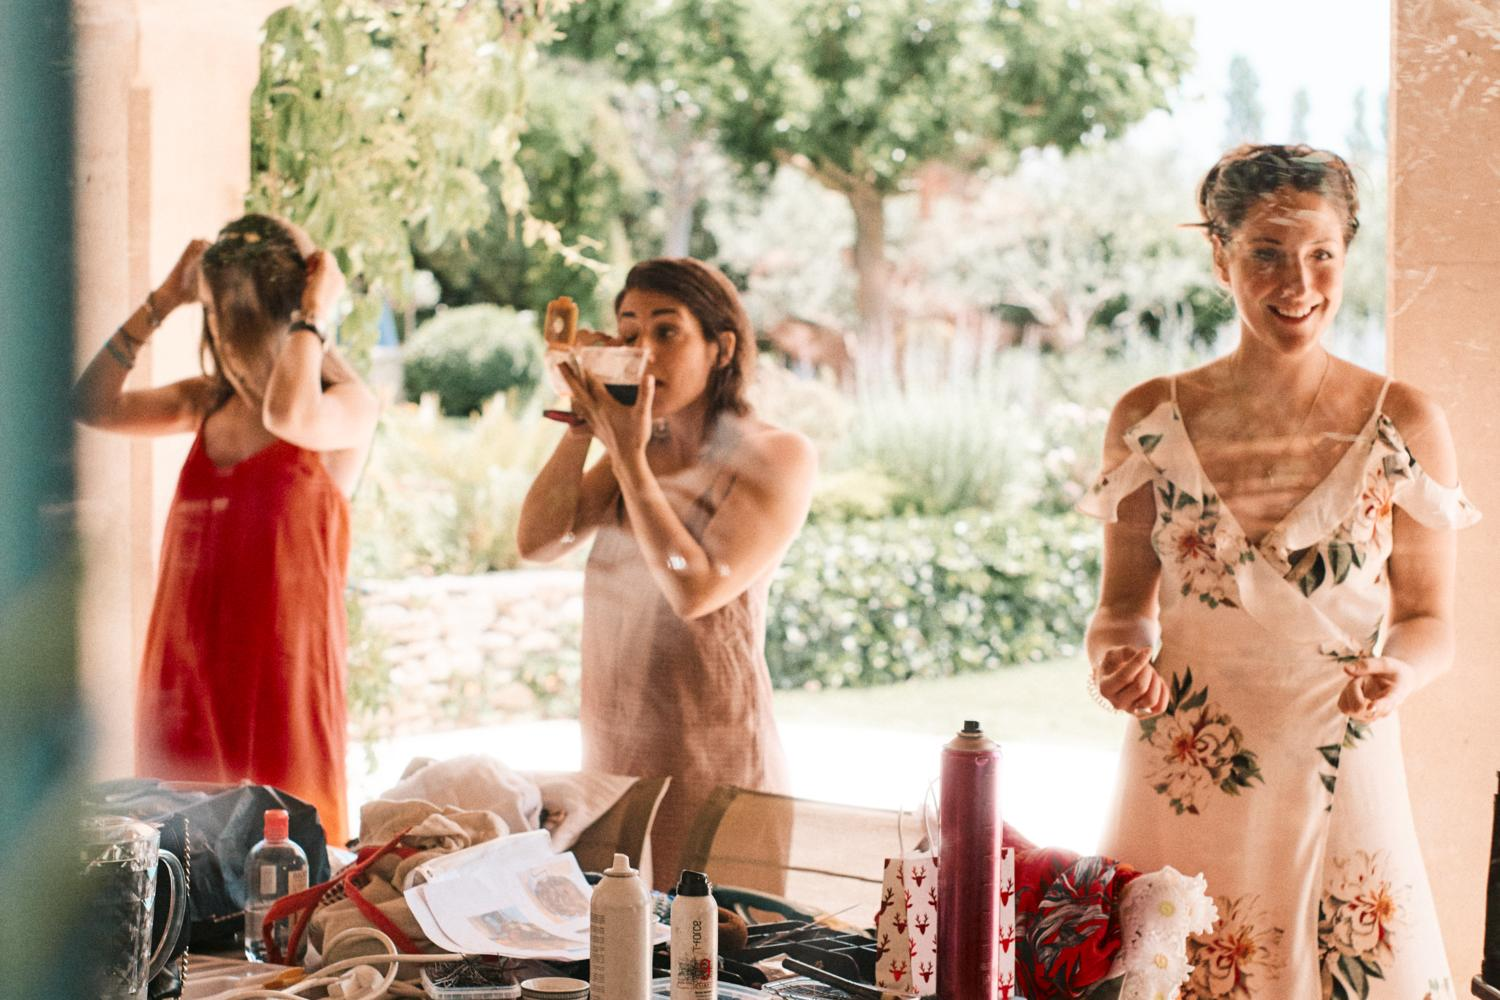 Three bridesmaids apply their own makeup outside in the sun